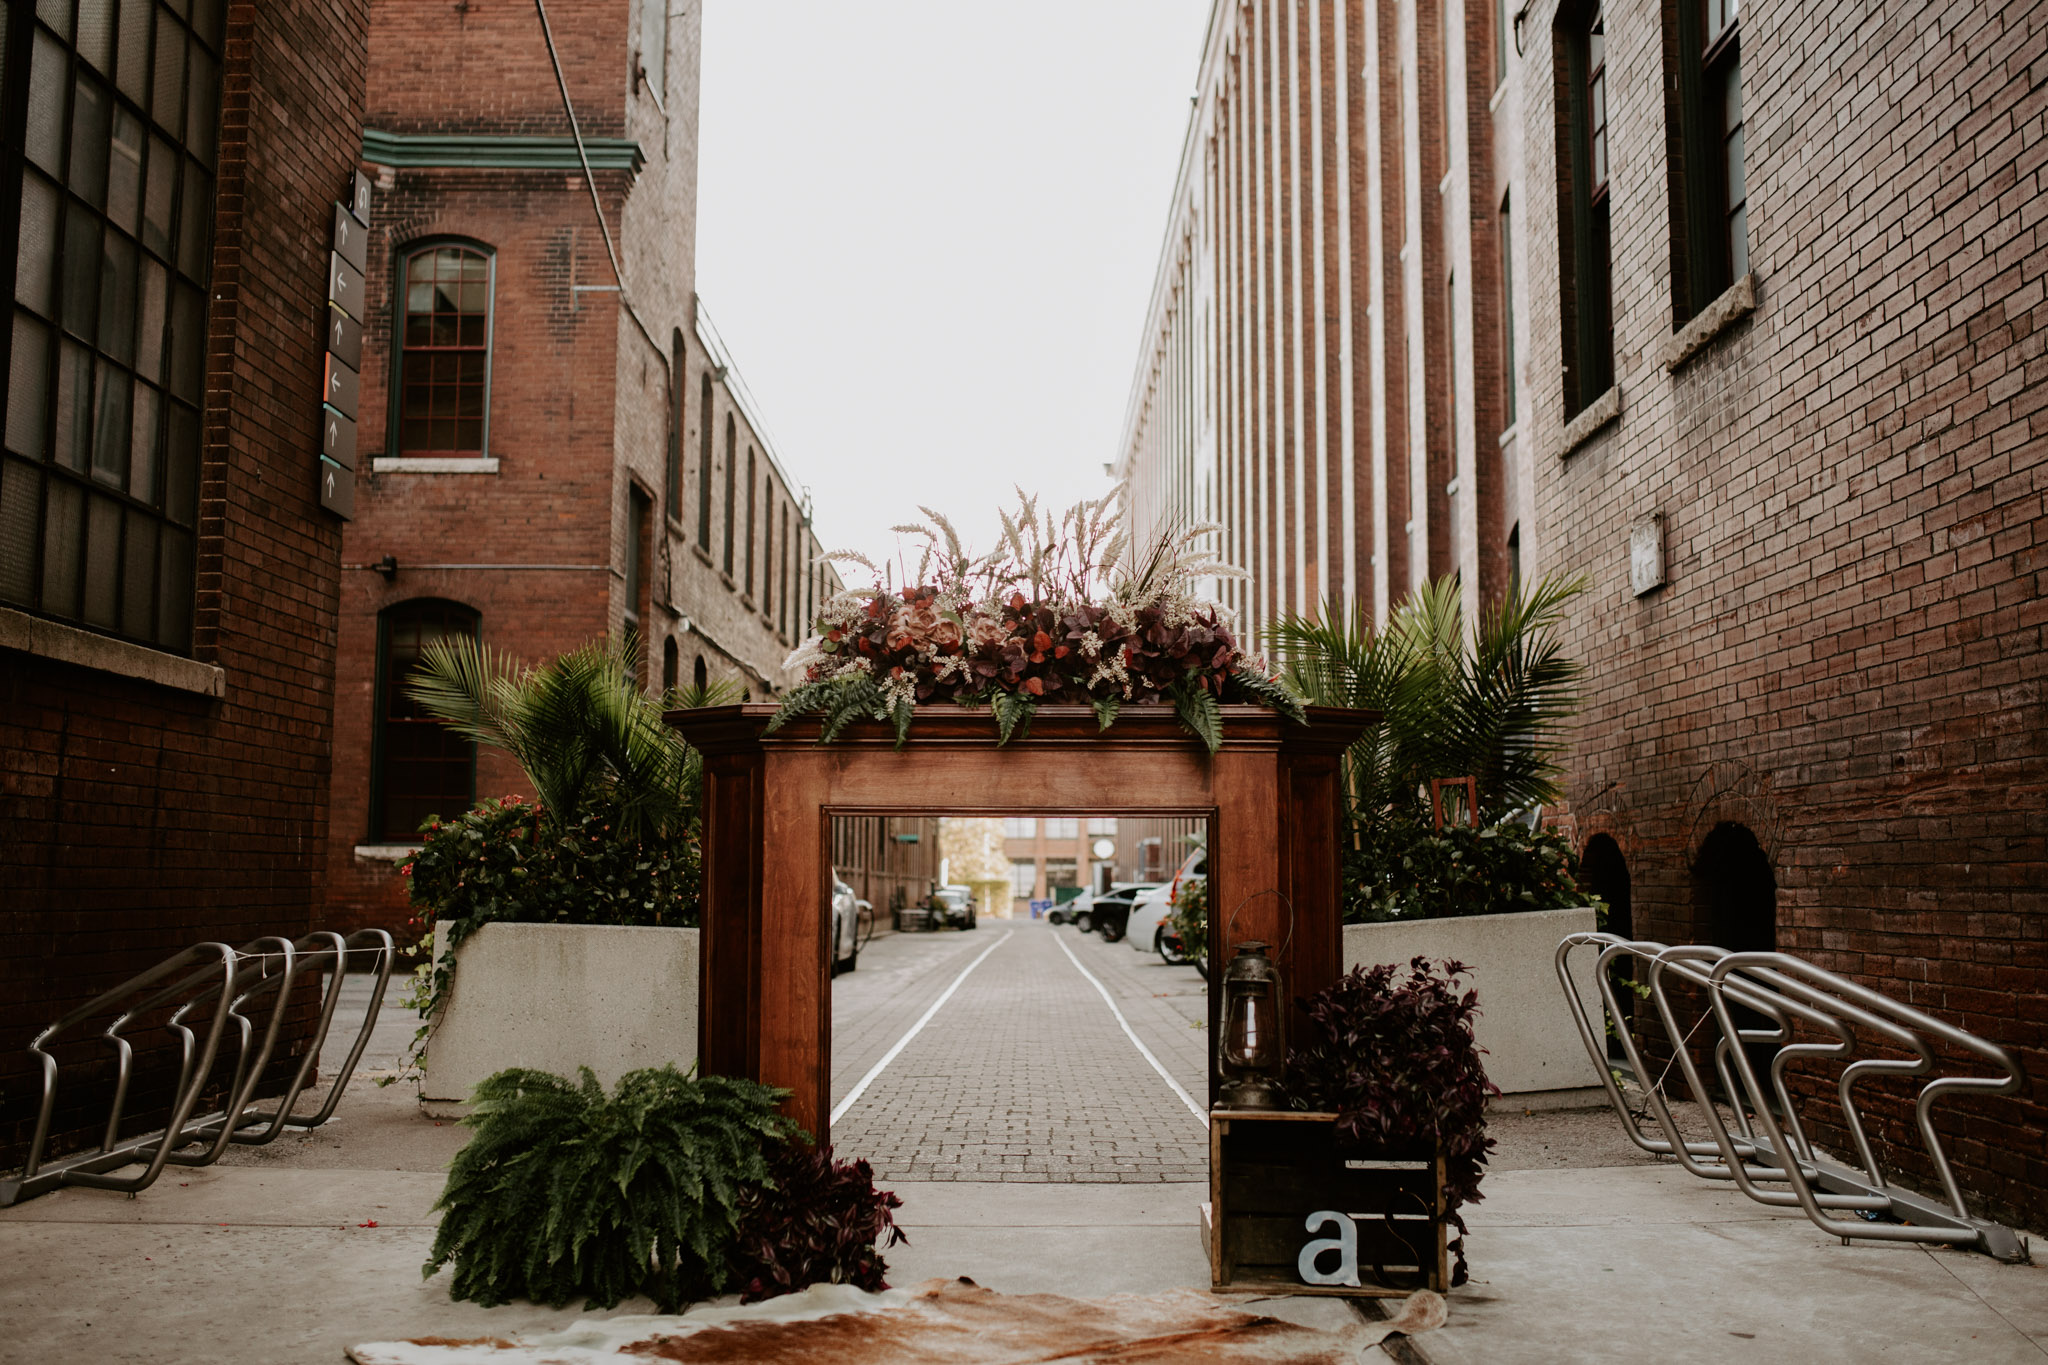 Liberty Village Wedding - Outdoor alter with fireplace and wreath